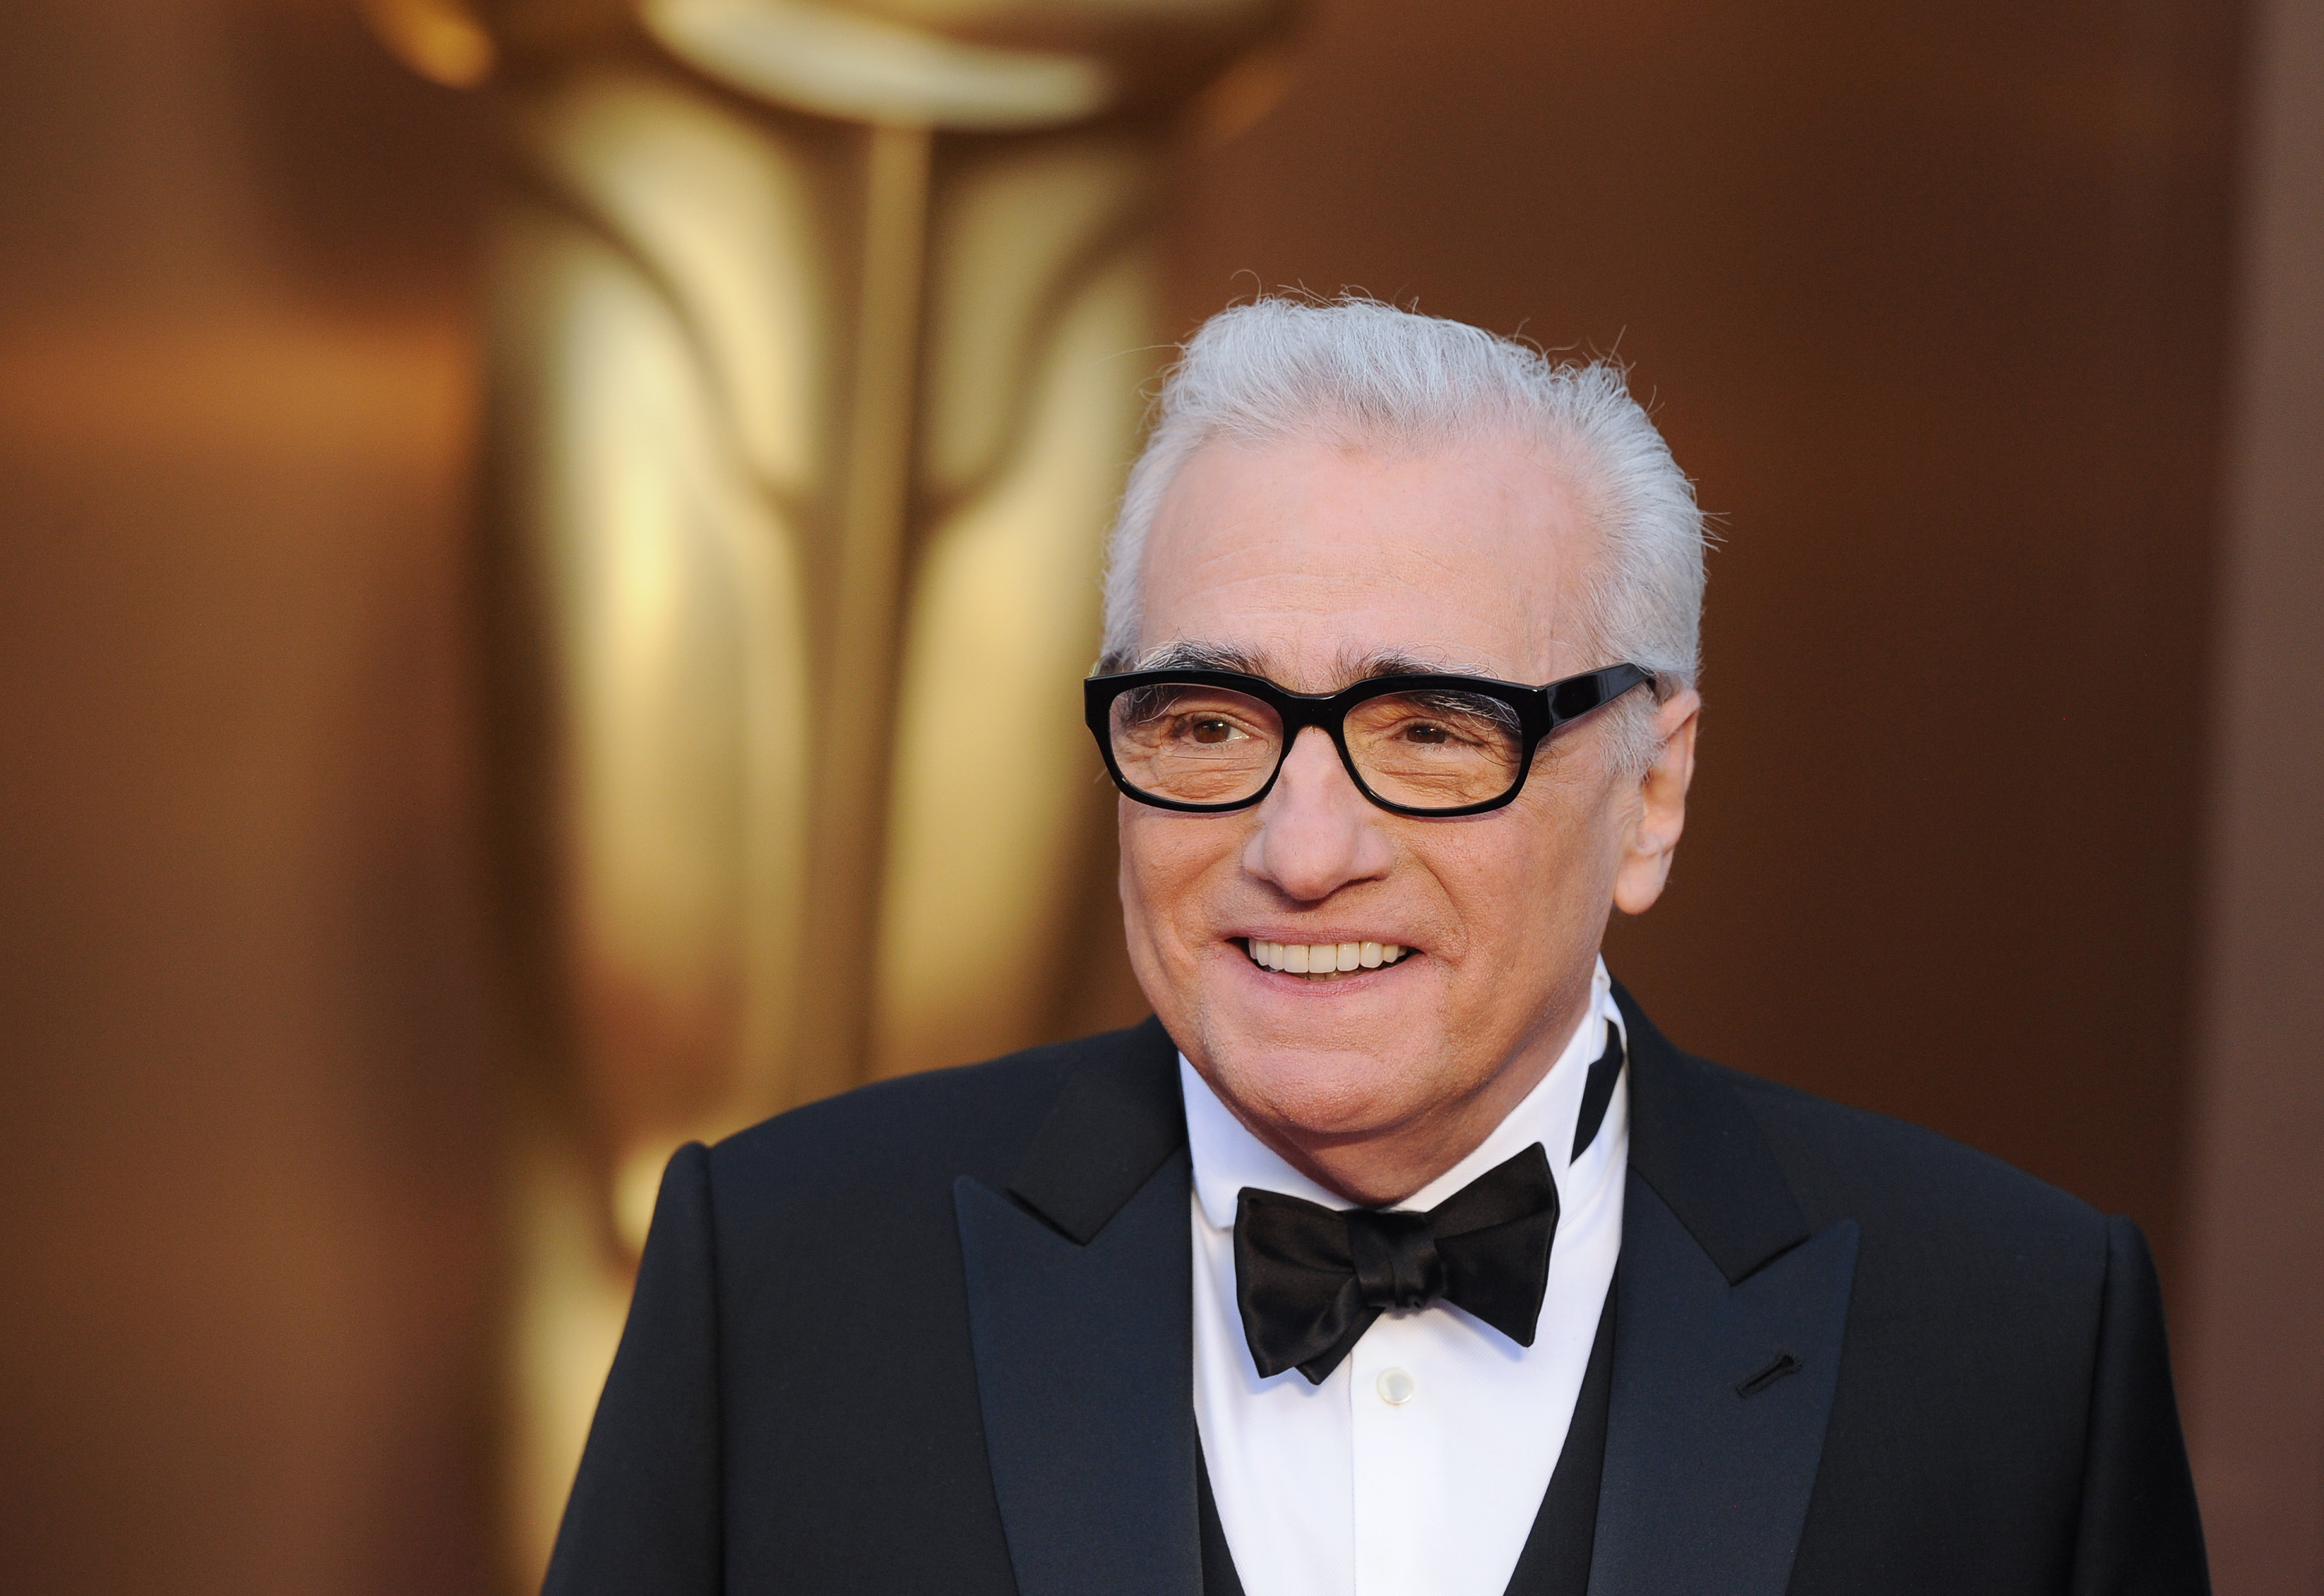 Martin Scorsese Discusses His Next Film 'Killers of the Flower Moon' | Observer